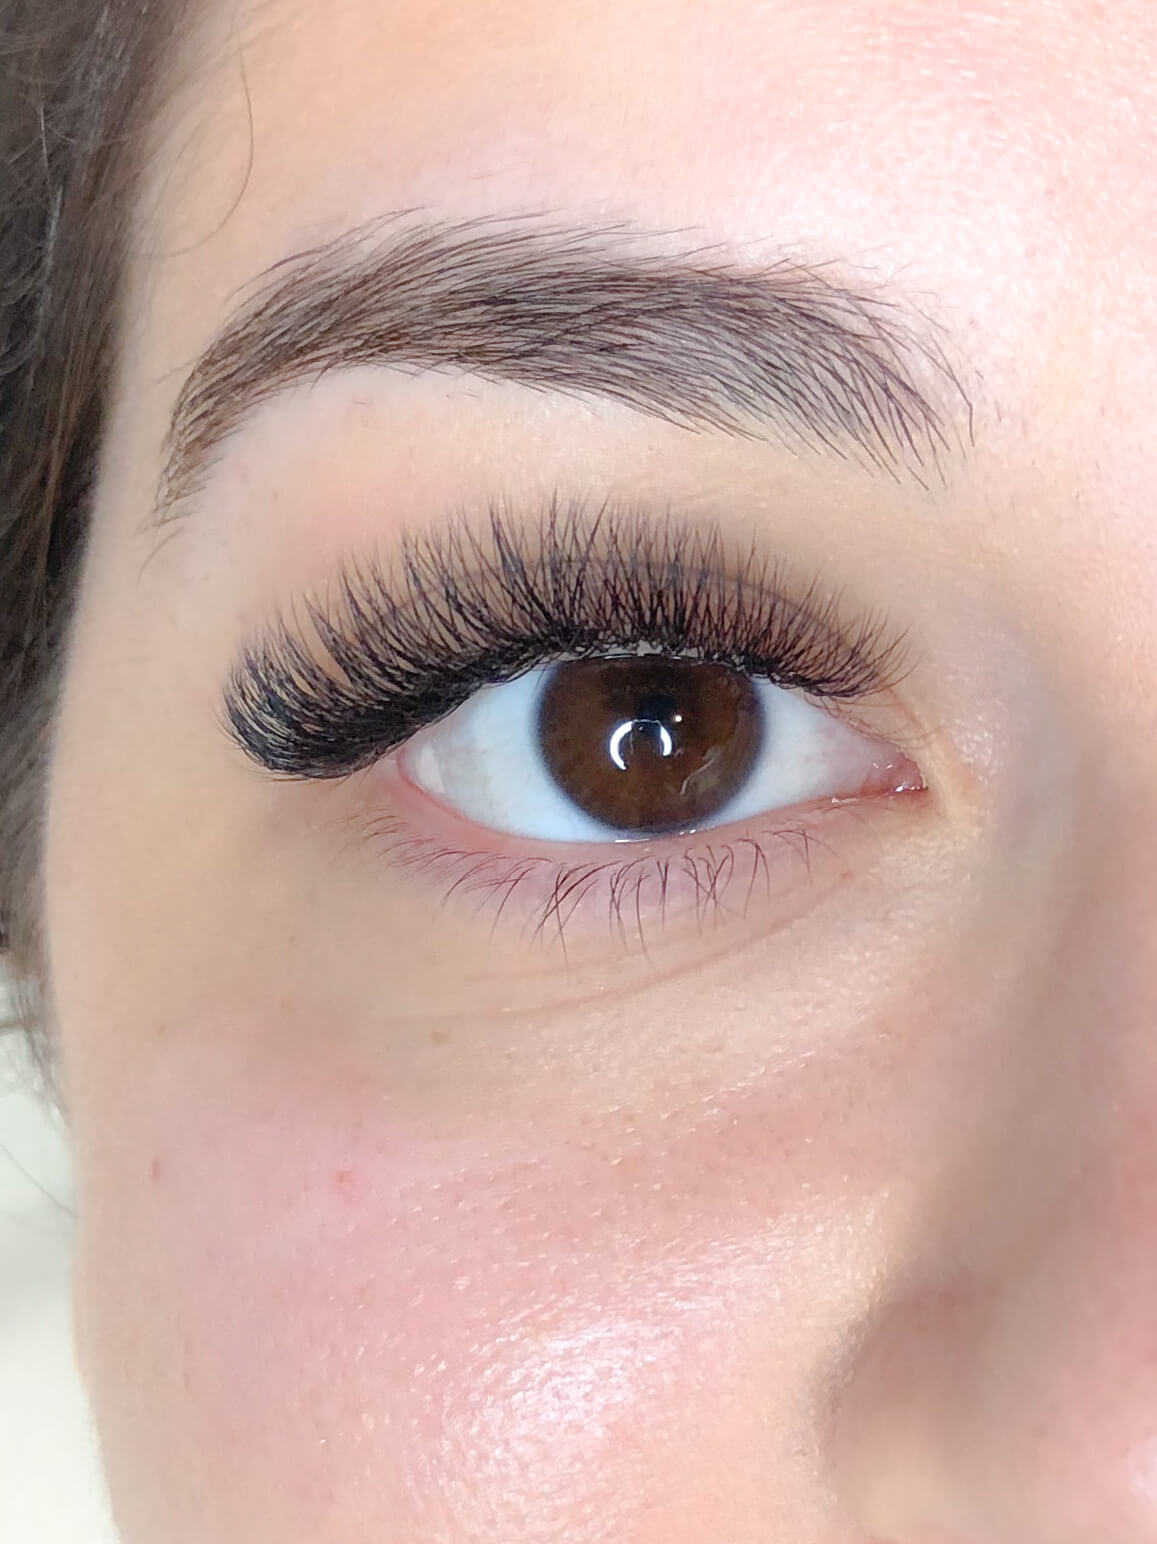 Looking for a dark lash-line? Then Eyelash Extensions are the choice for you.